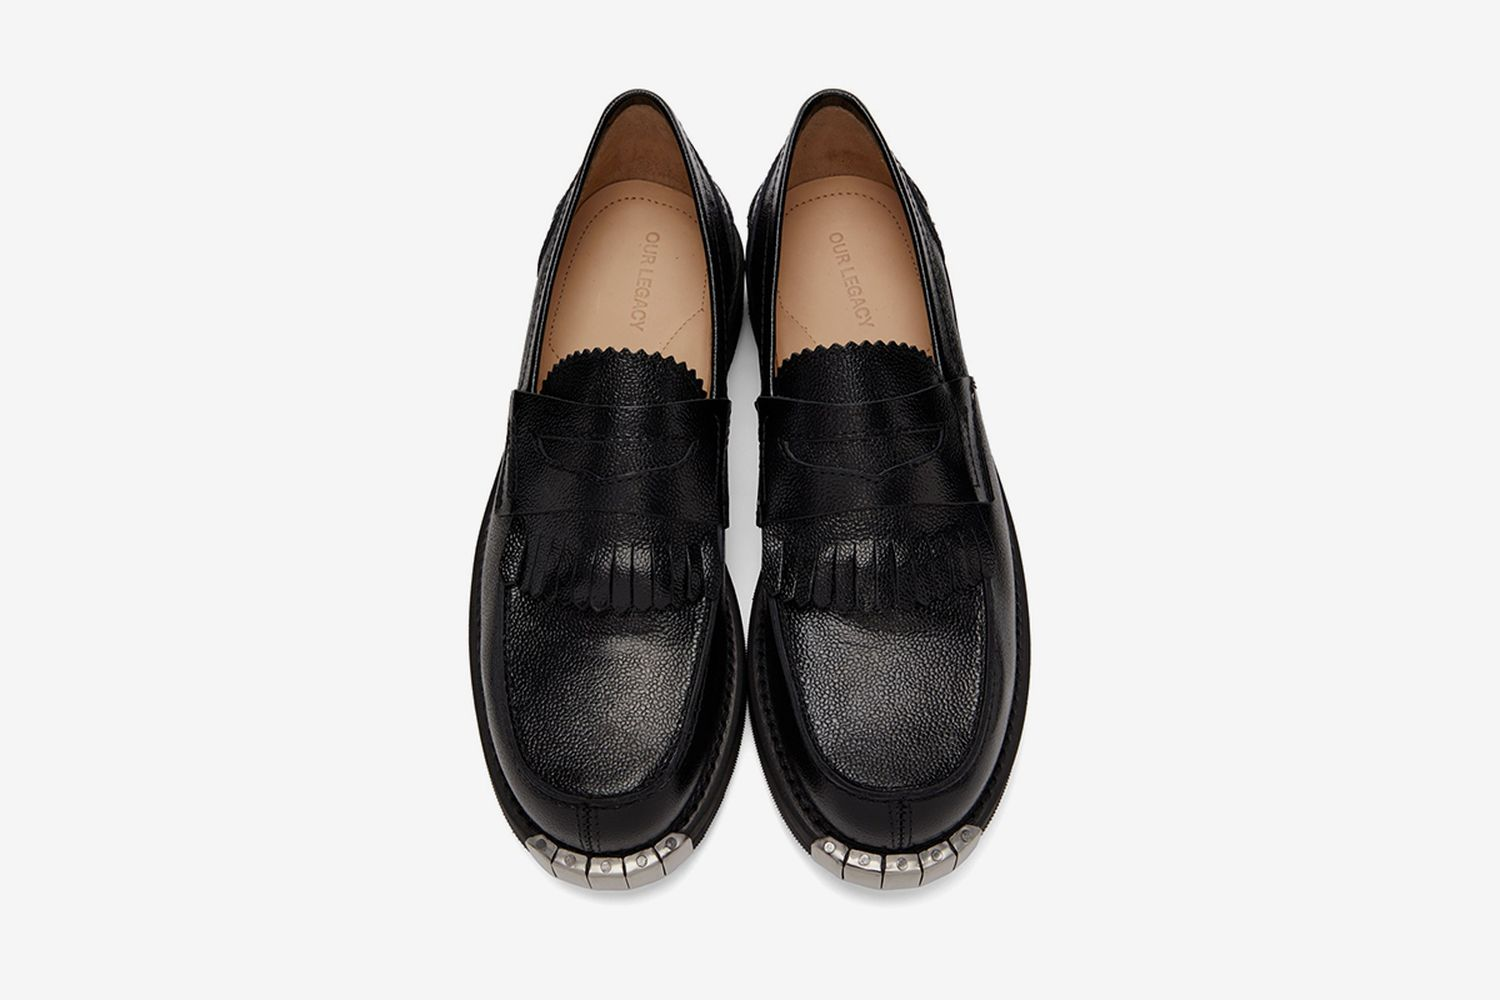 Army Loafer